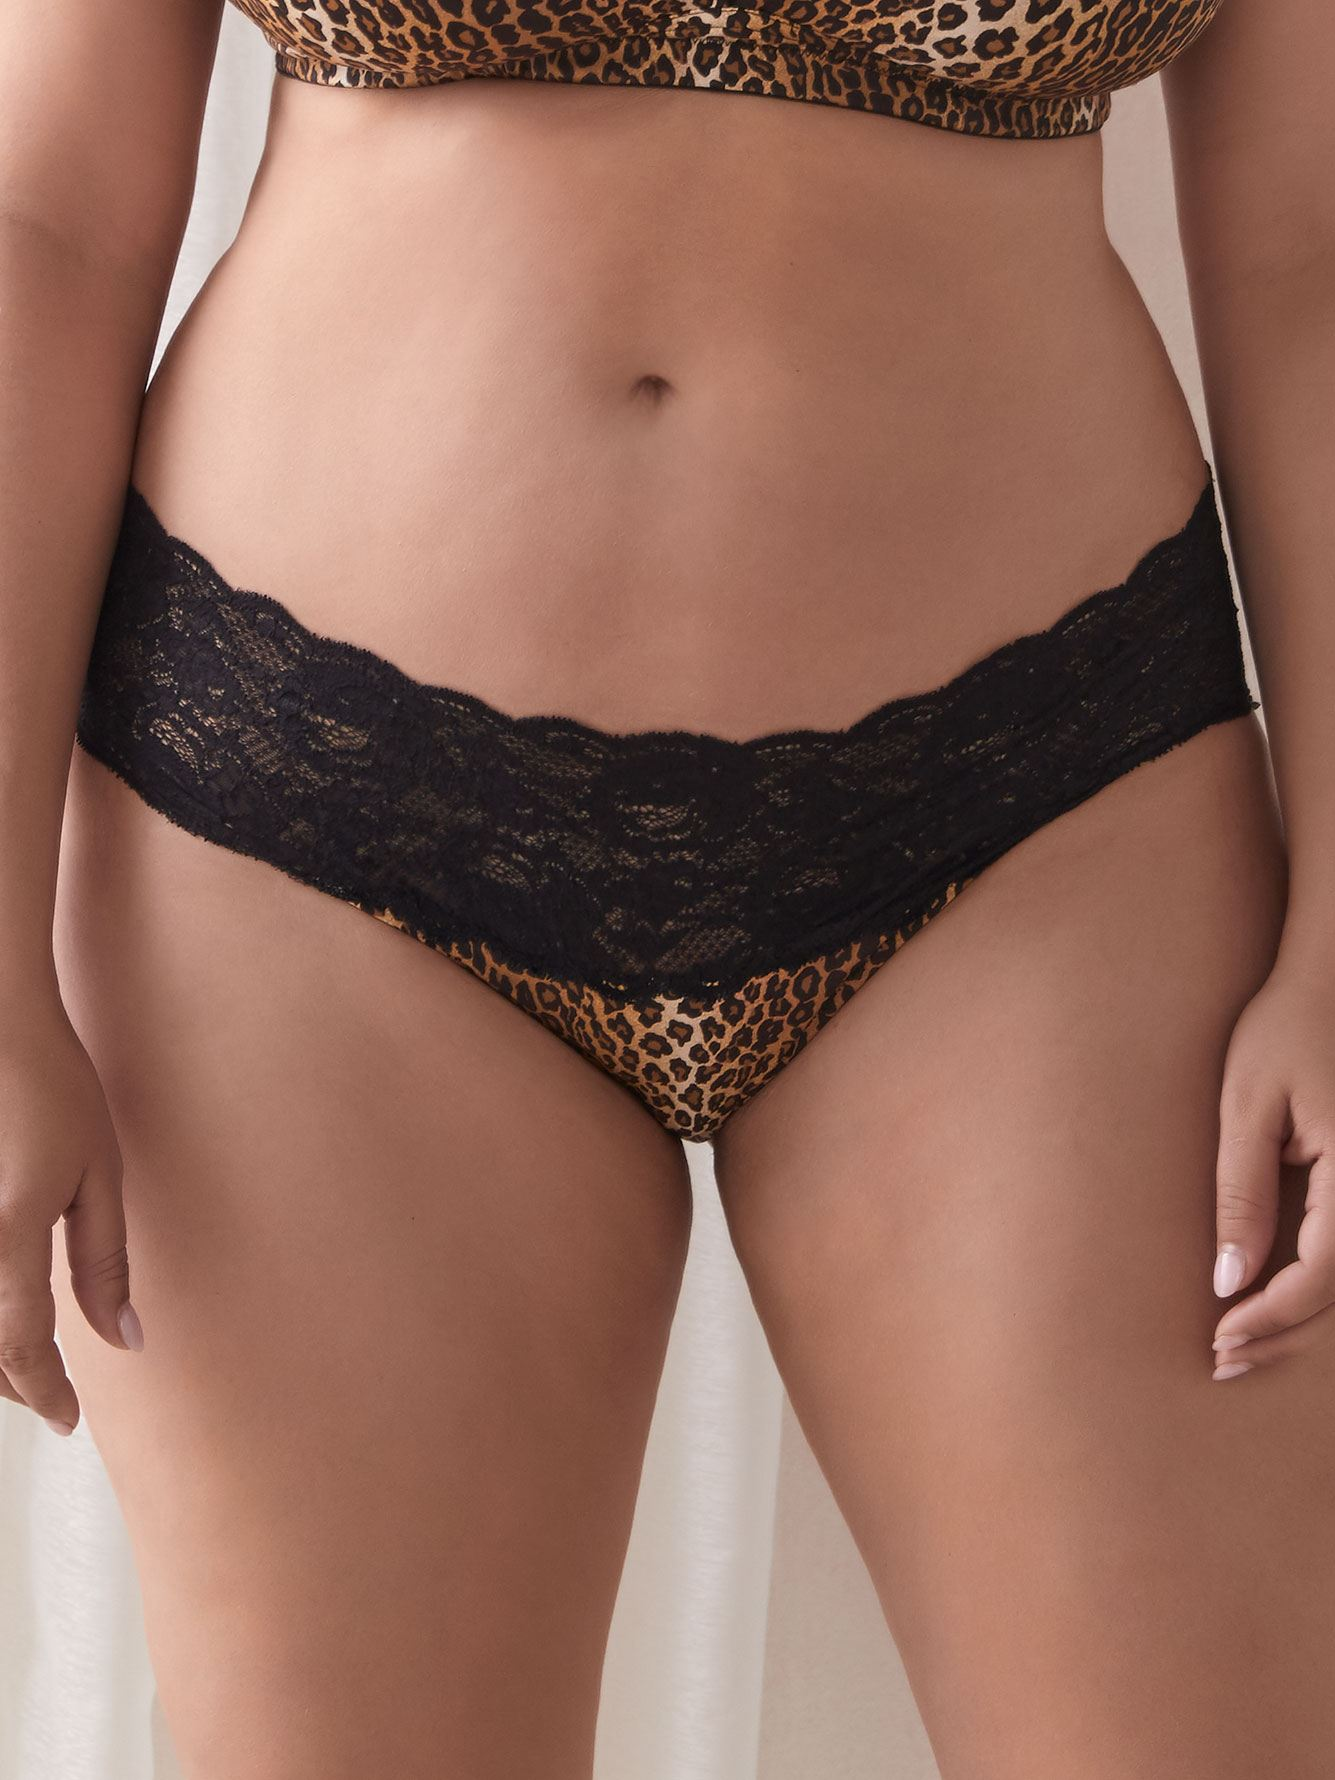 Evolution Animal Print Boyshort Panty - Cosabella